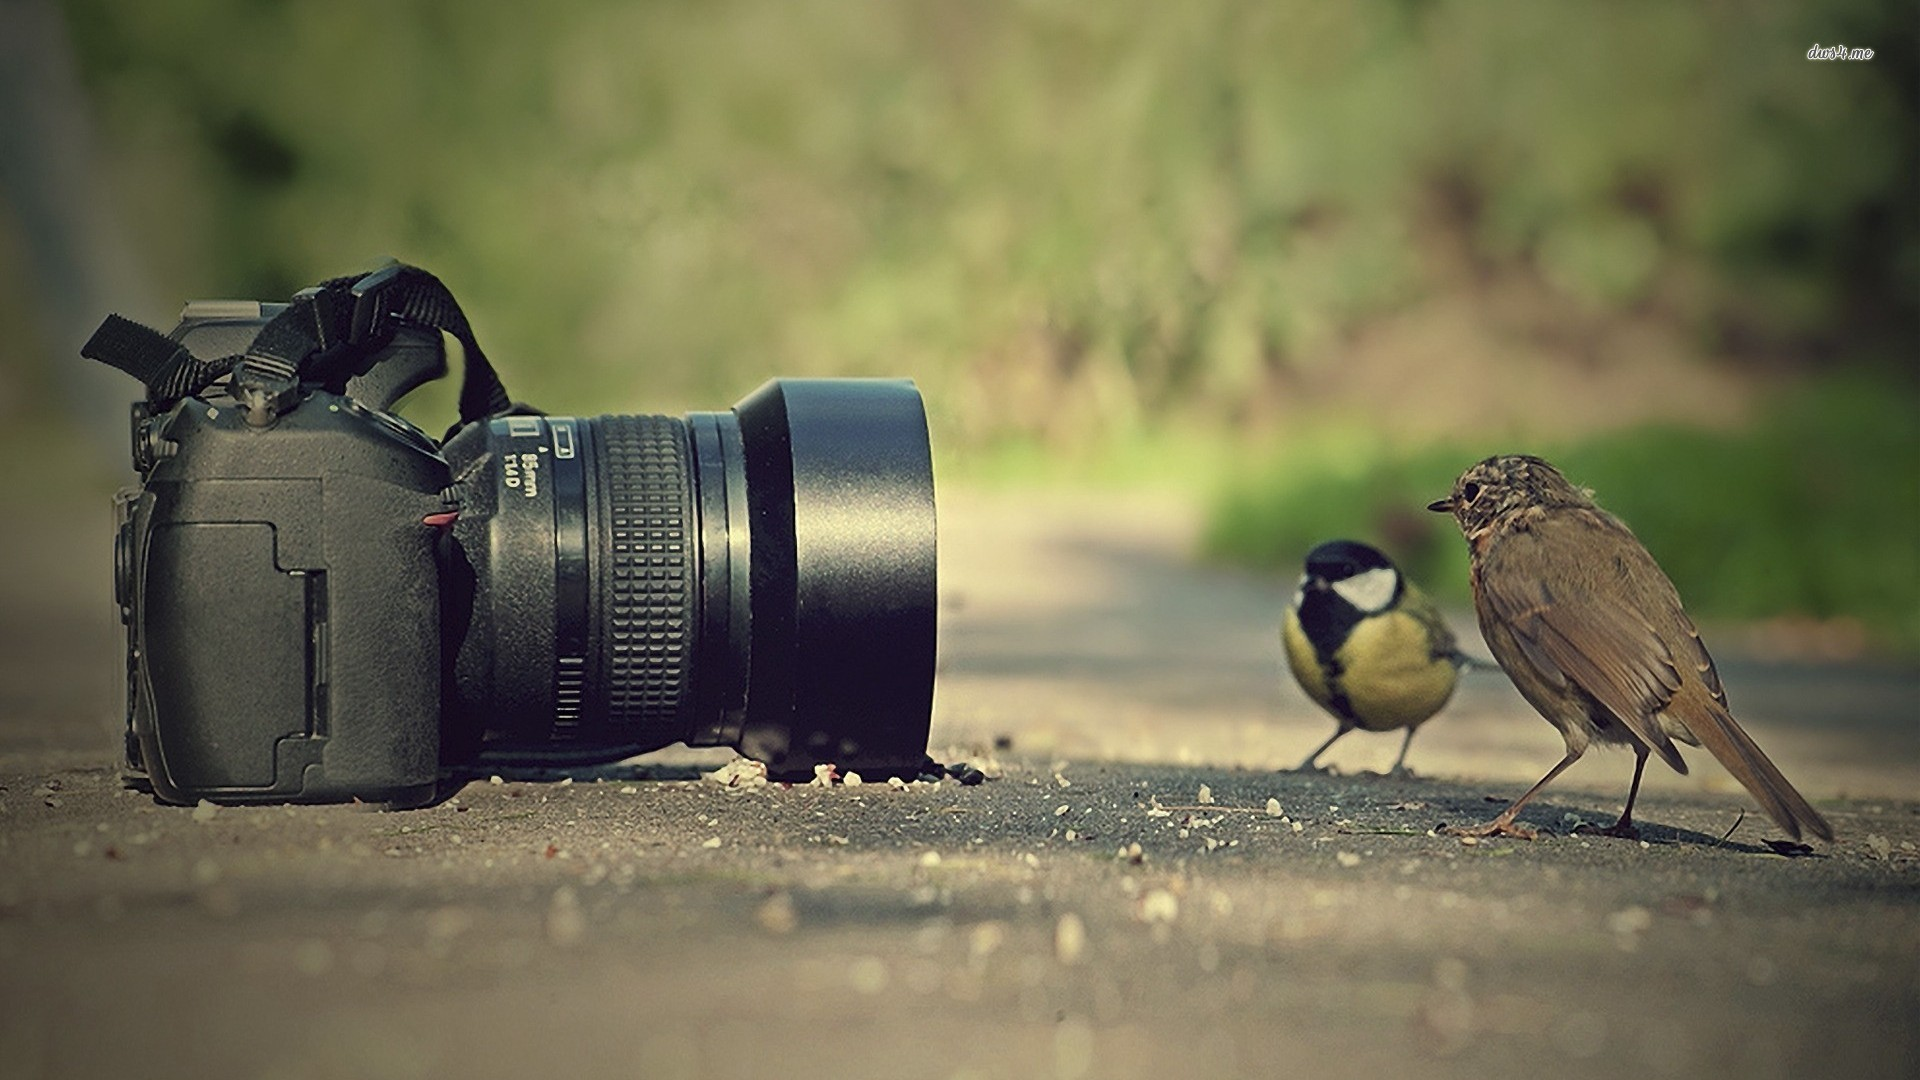 Photography HD Wallpaper Background